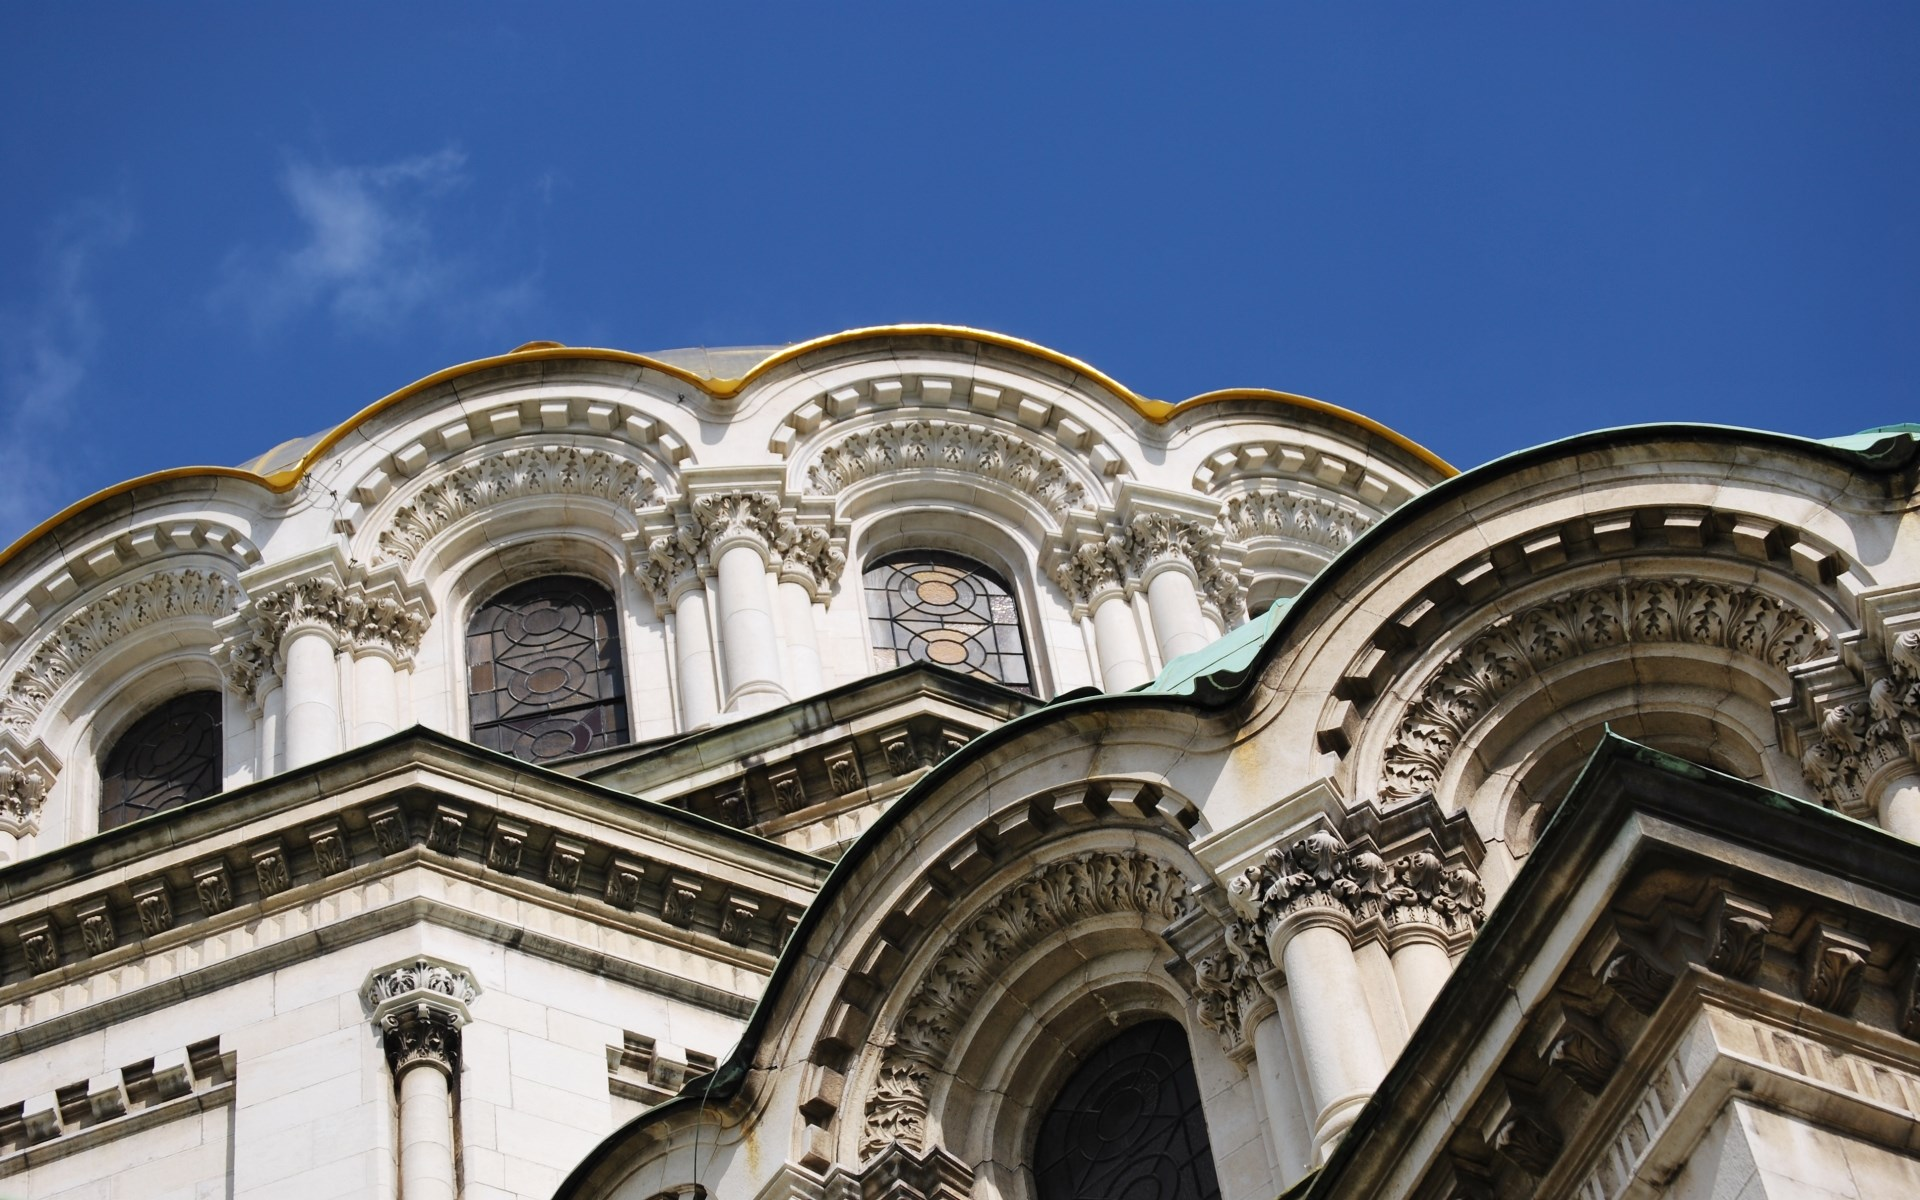 alexander-nevsky-cathedral-sofia-picture-1080p-windows-wallpaper-wpc5801297